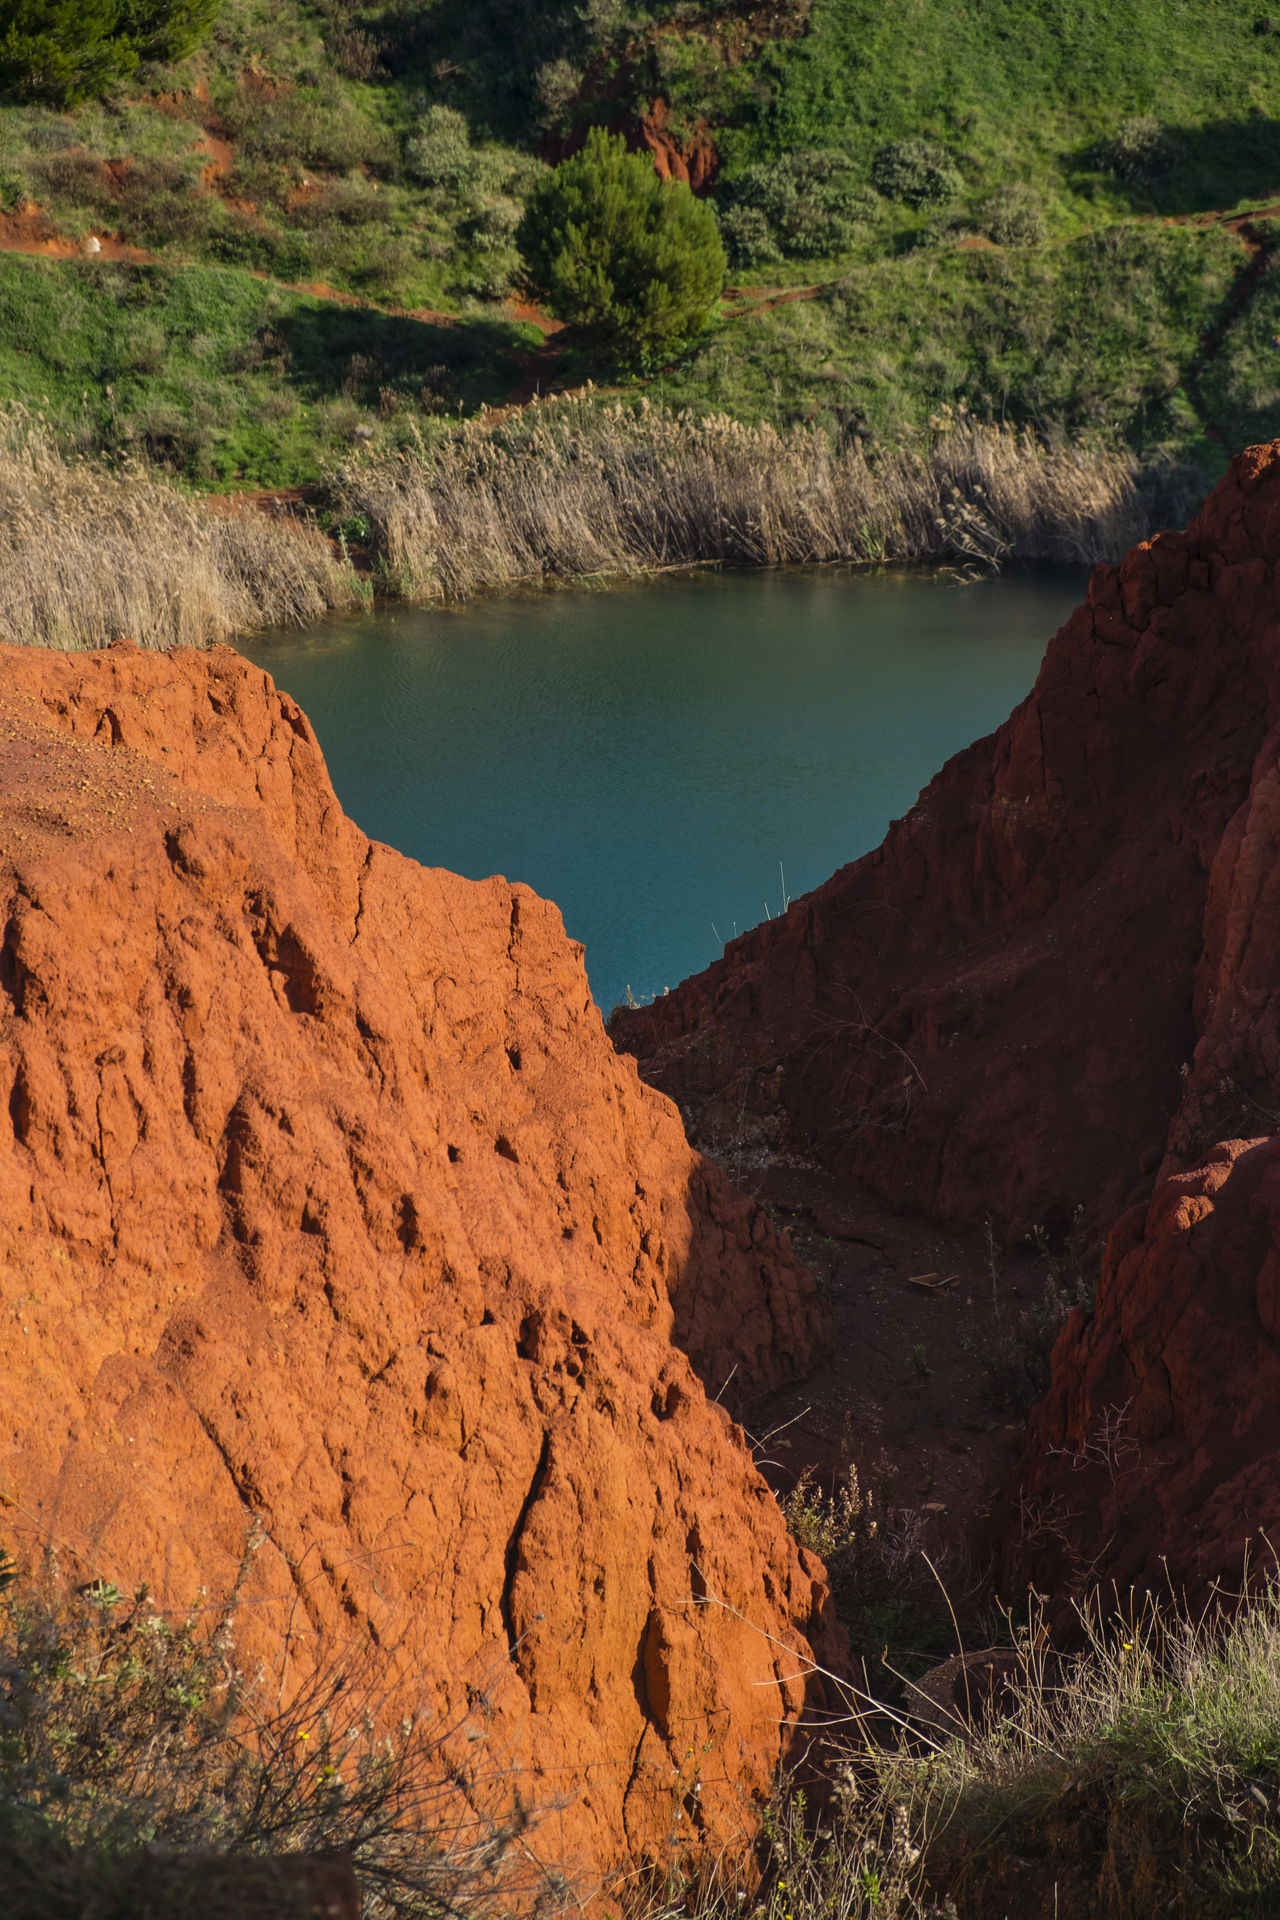 Bauxite Bauxite Cave Beauty In Nature Cave Day Environmental Conservation Lake Lake View Landscape Landscape_photography Mountain Nature No People Outdoors Rock - Object Scenics Tranquility Travel Destinations Vacations Water